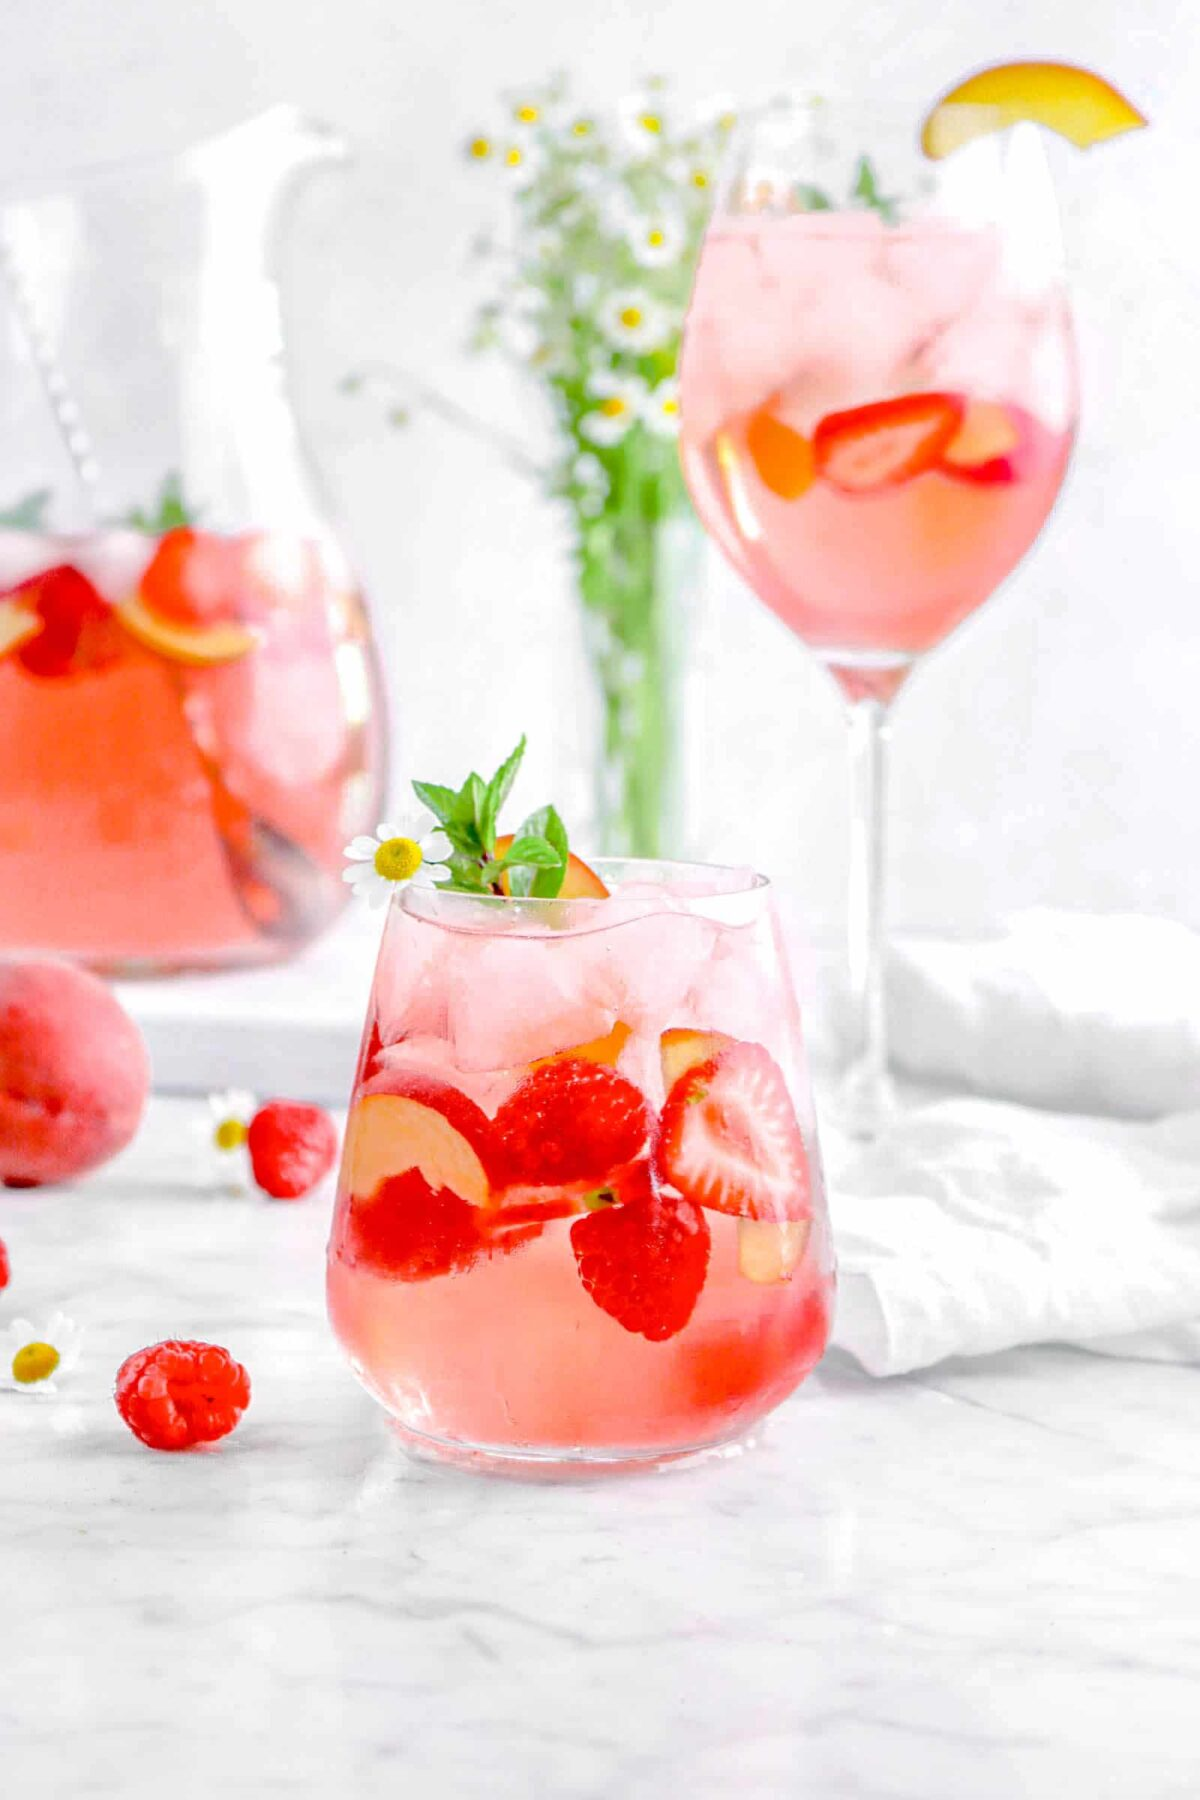 sangria with flowers, berries, and a sprig of mint